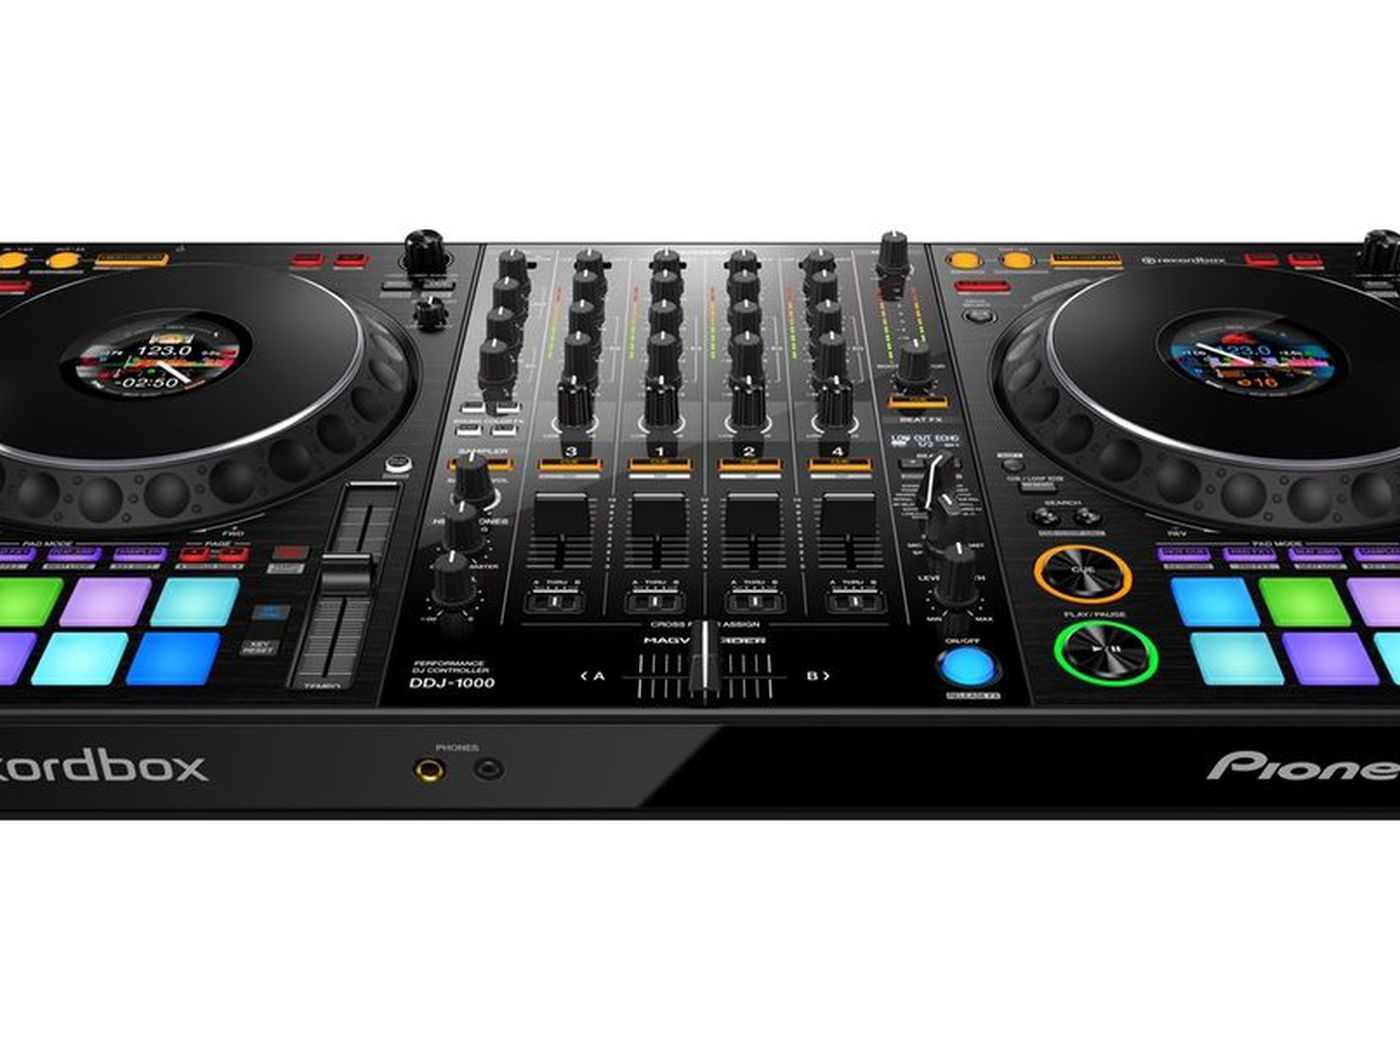 Pioneers New DJ Controller Brings A Club Style Layout To Portable Unit